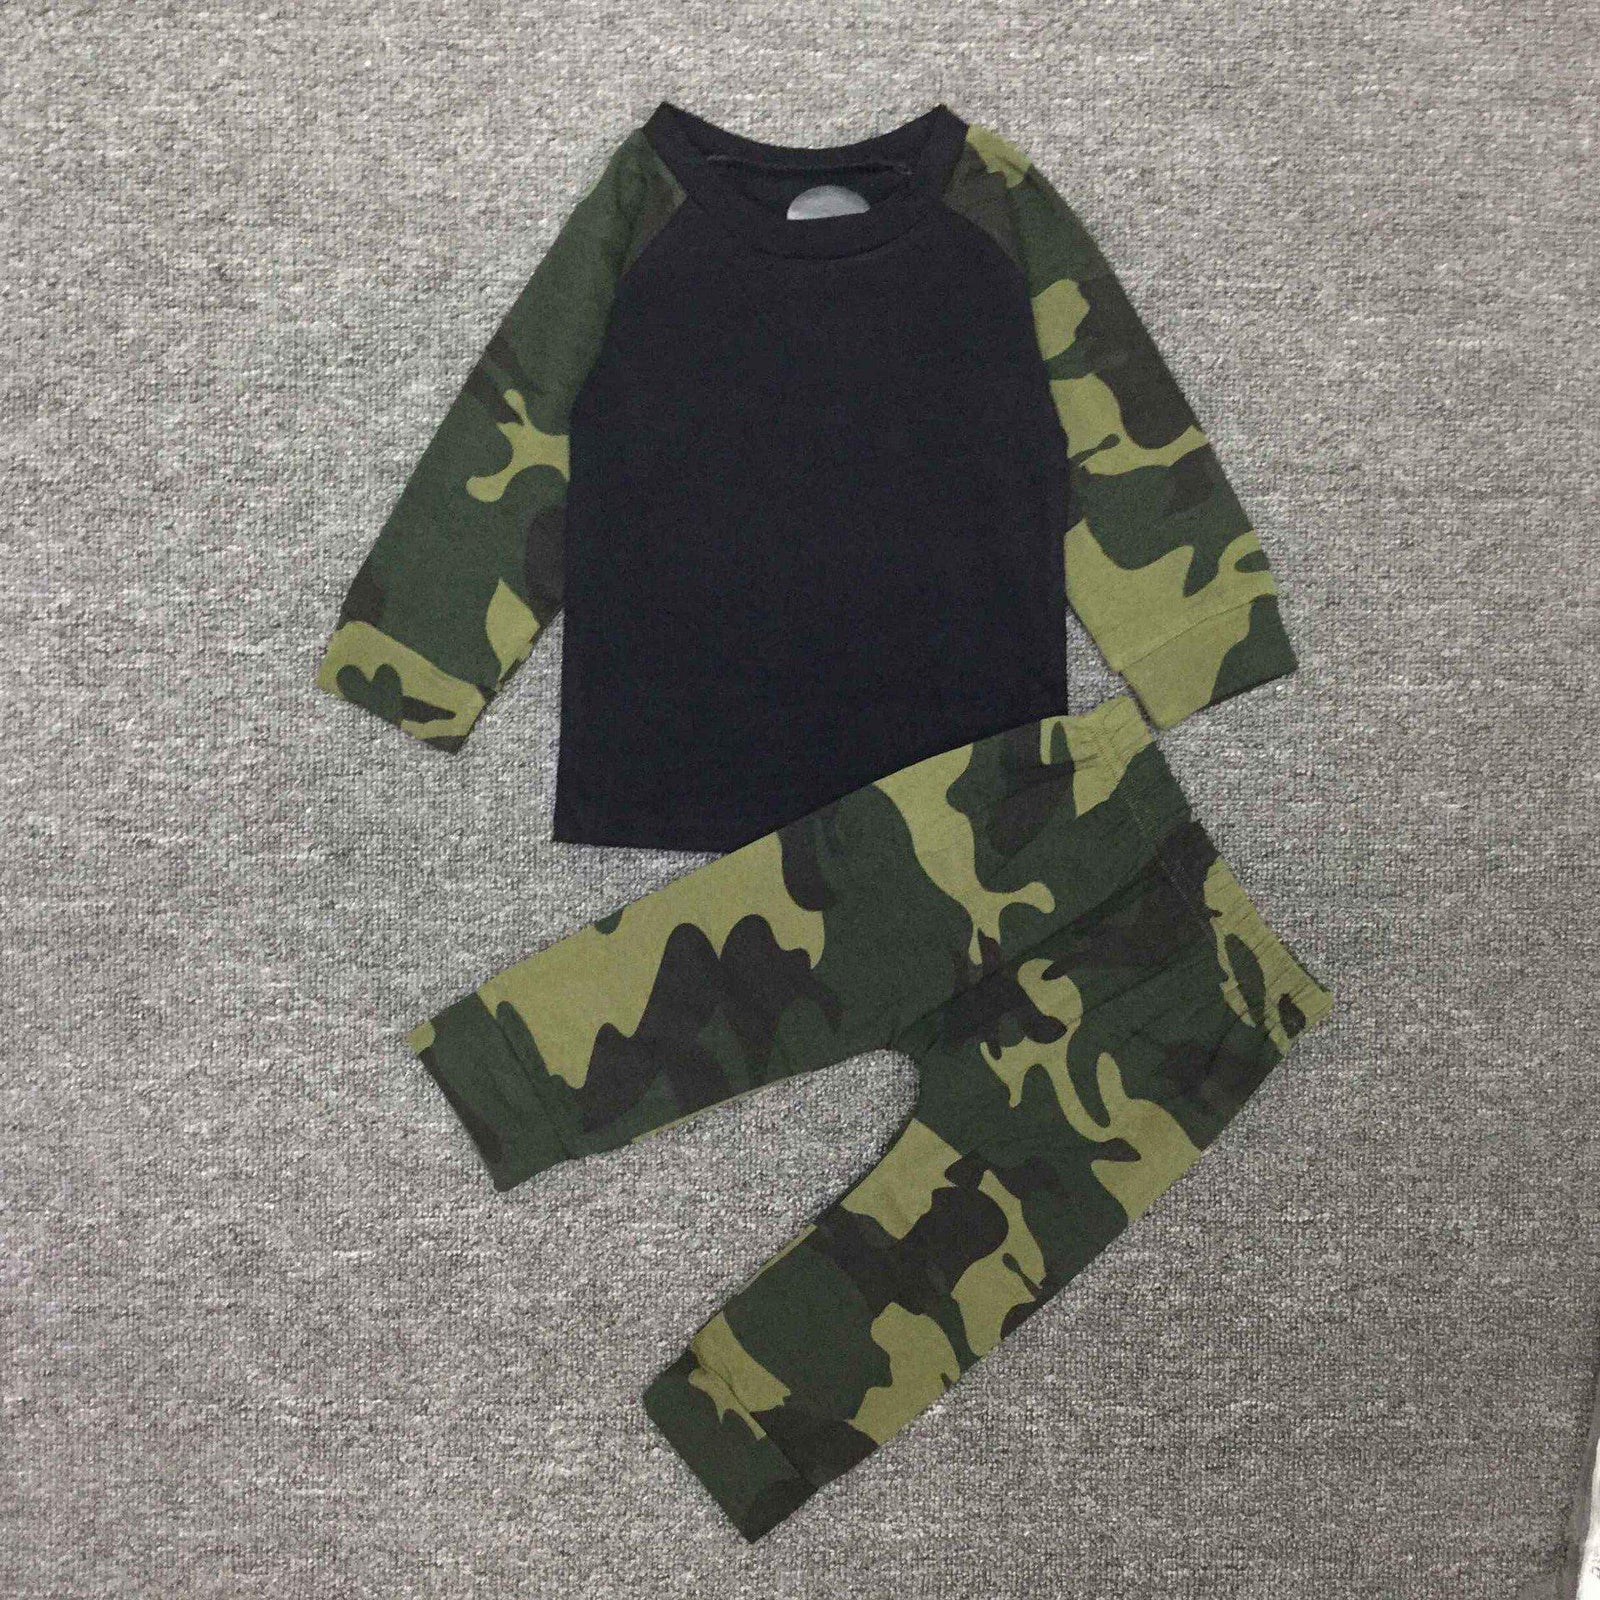 2-piece Infant Camouflage Suit